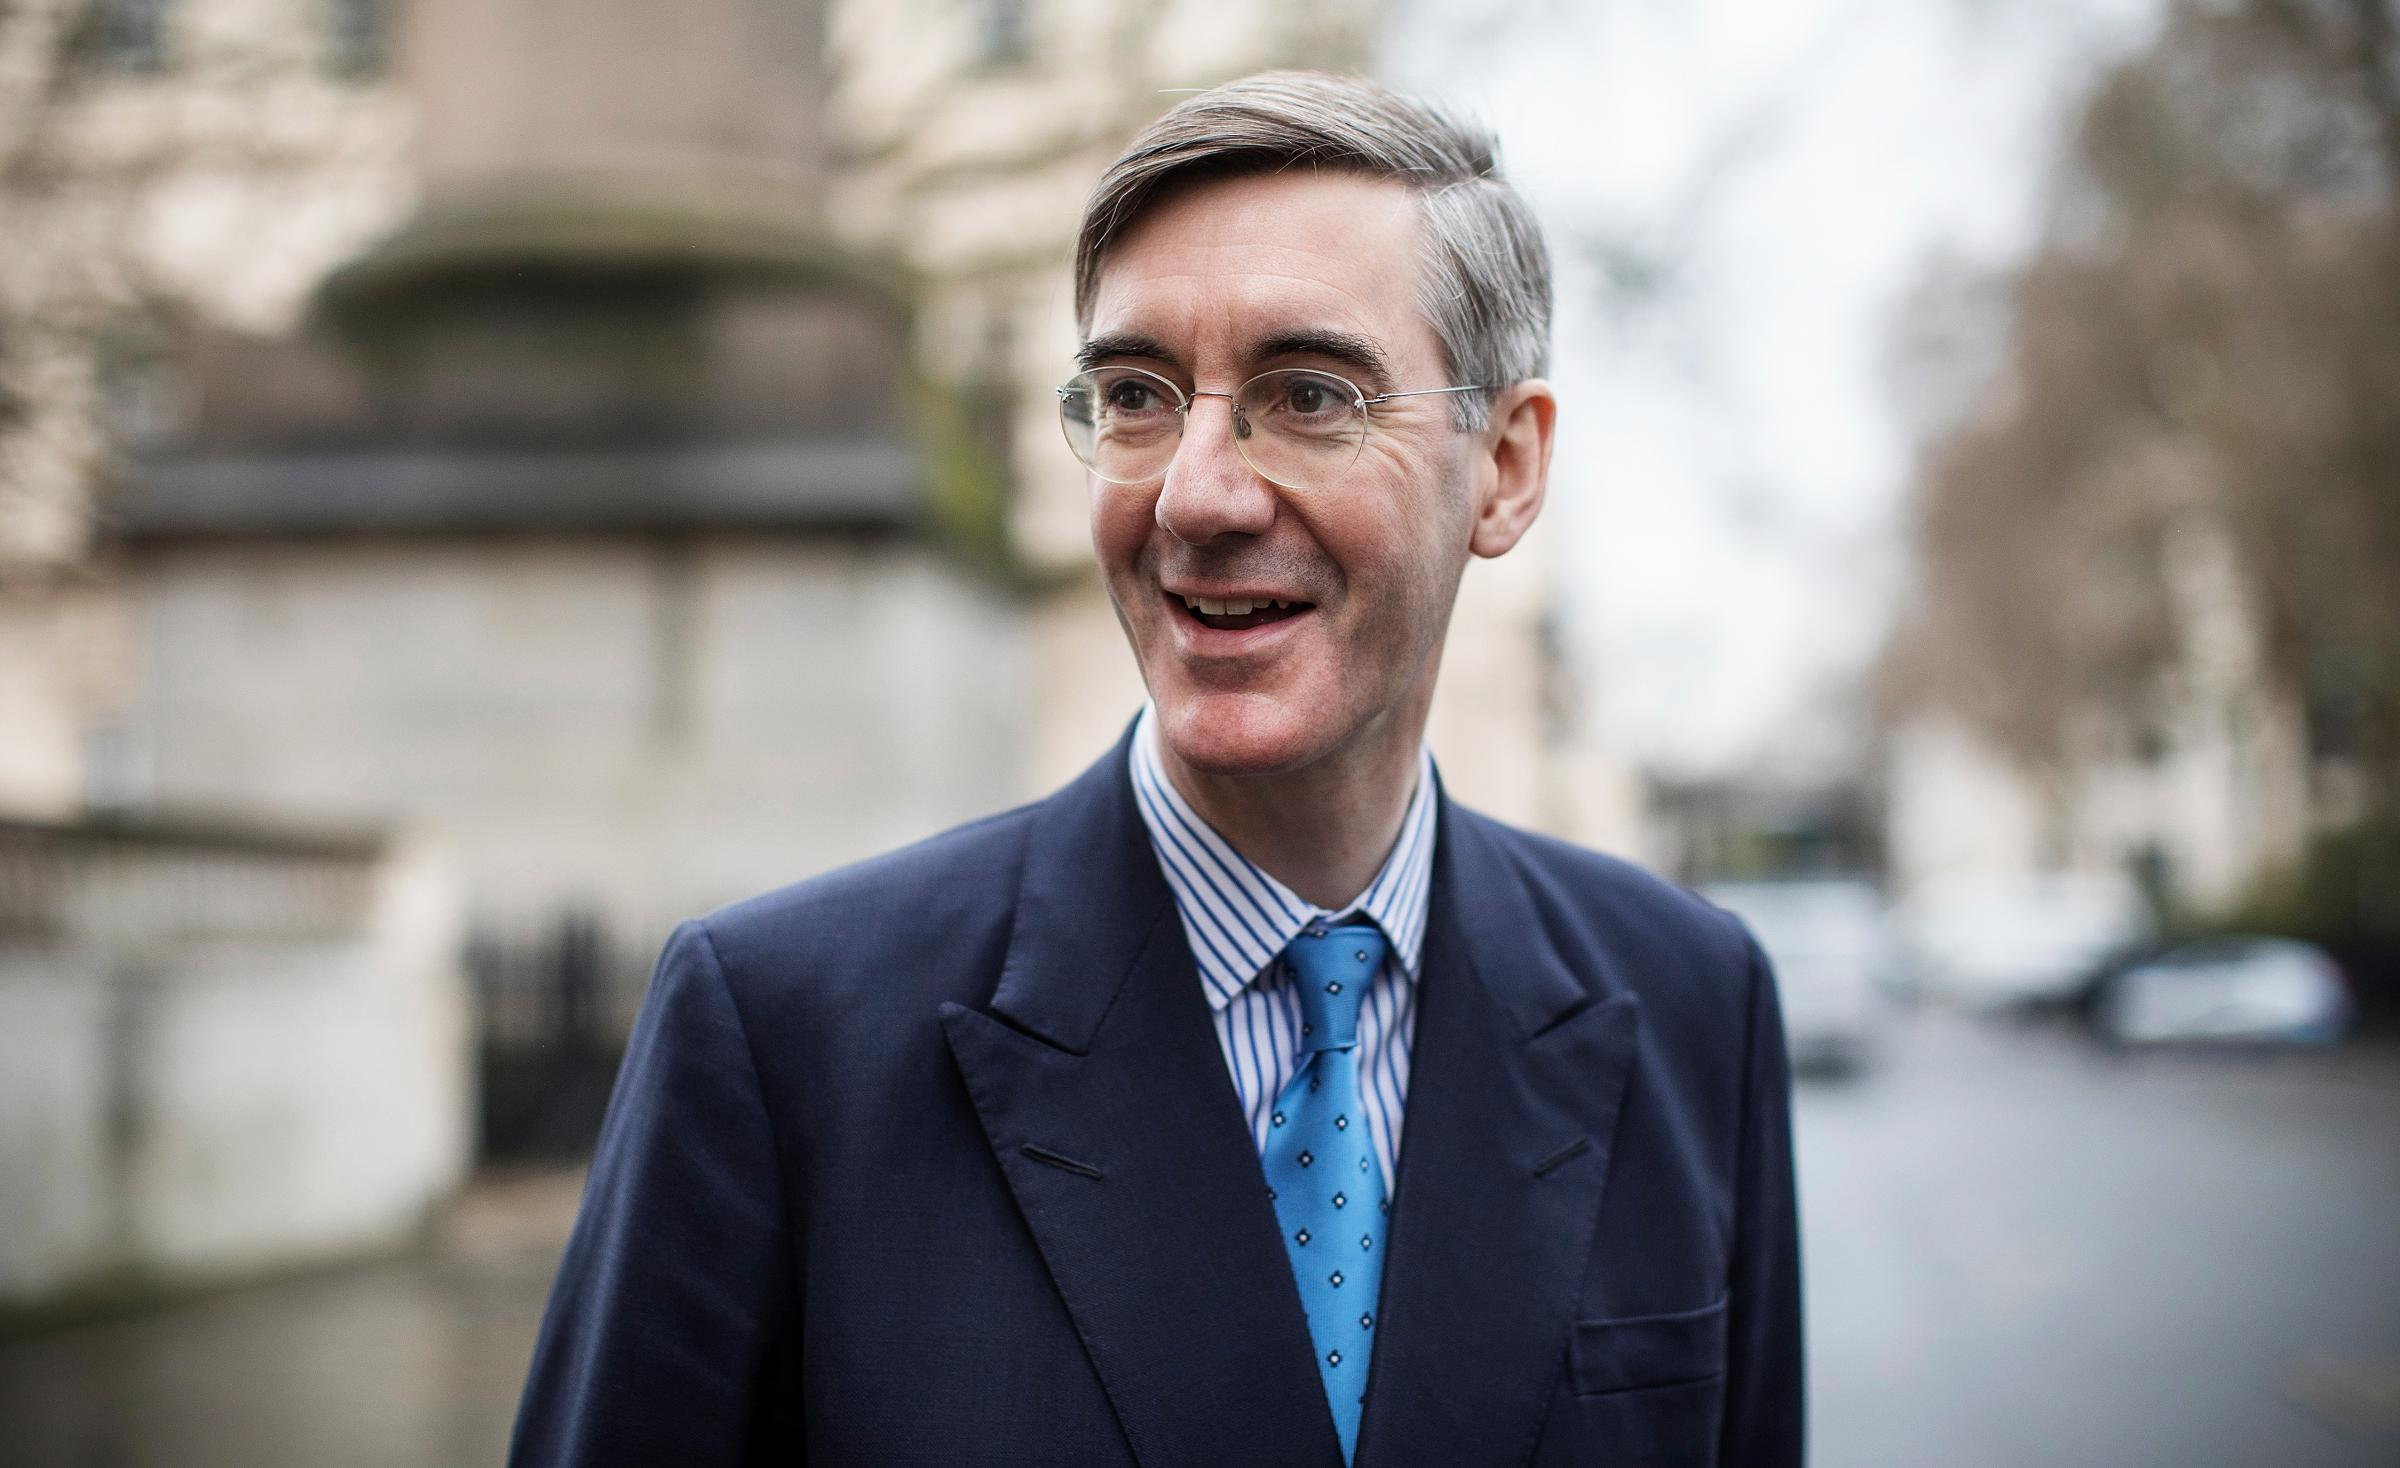 Jacob Rees-Mogg's vision will increase inequalities and remove workers' protections